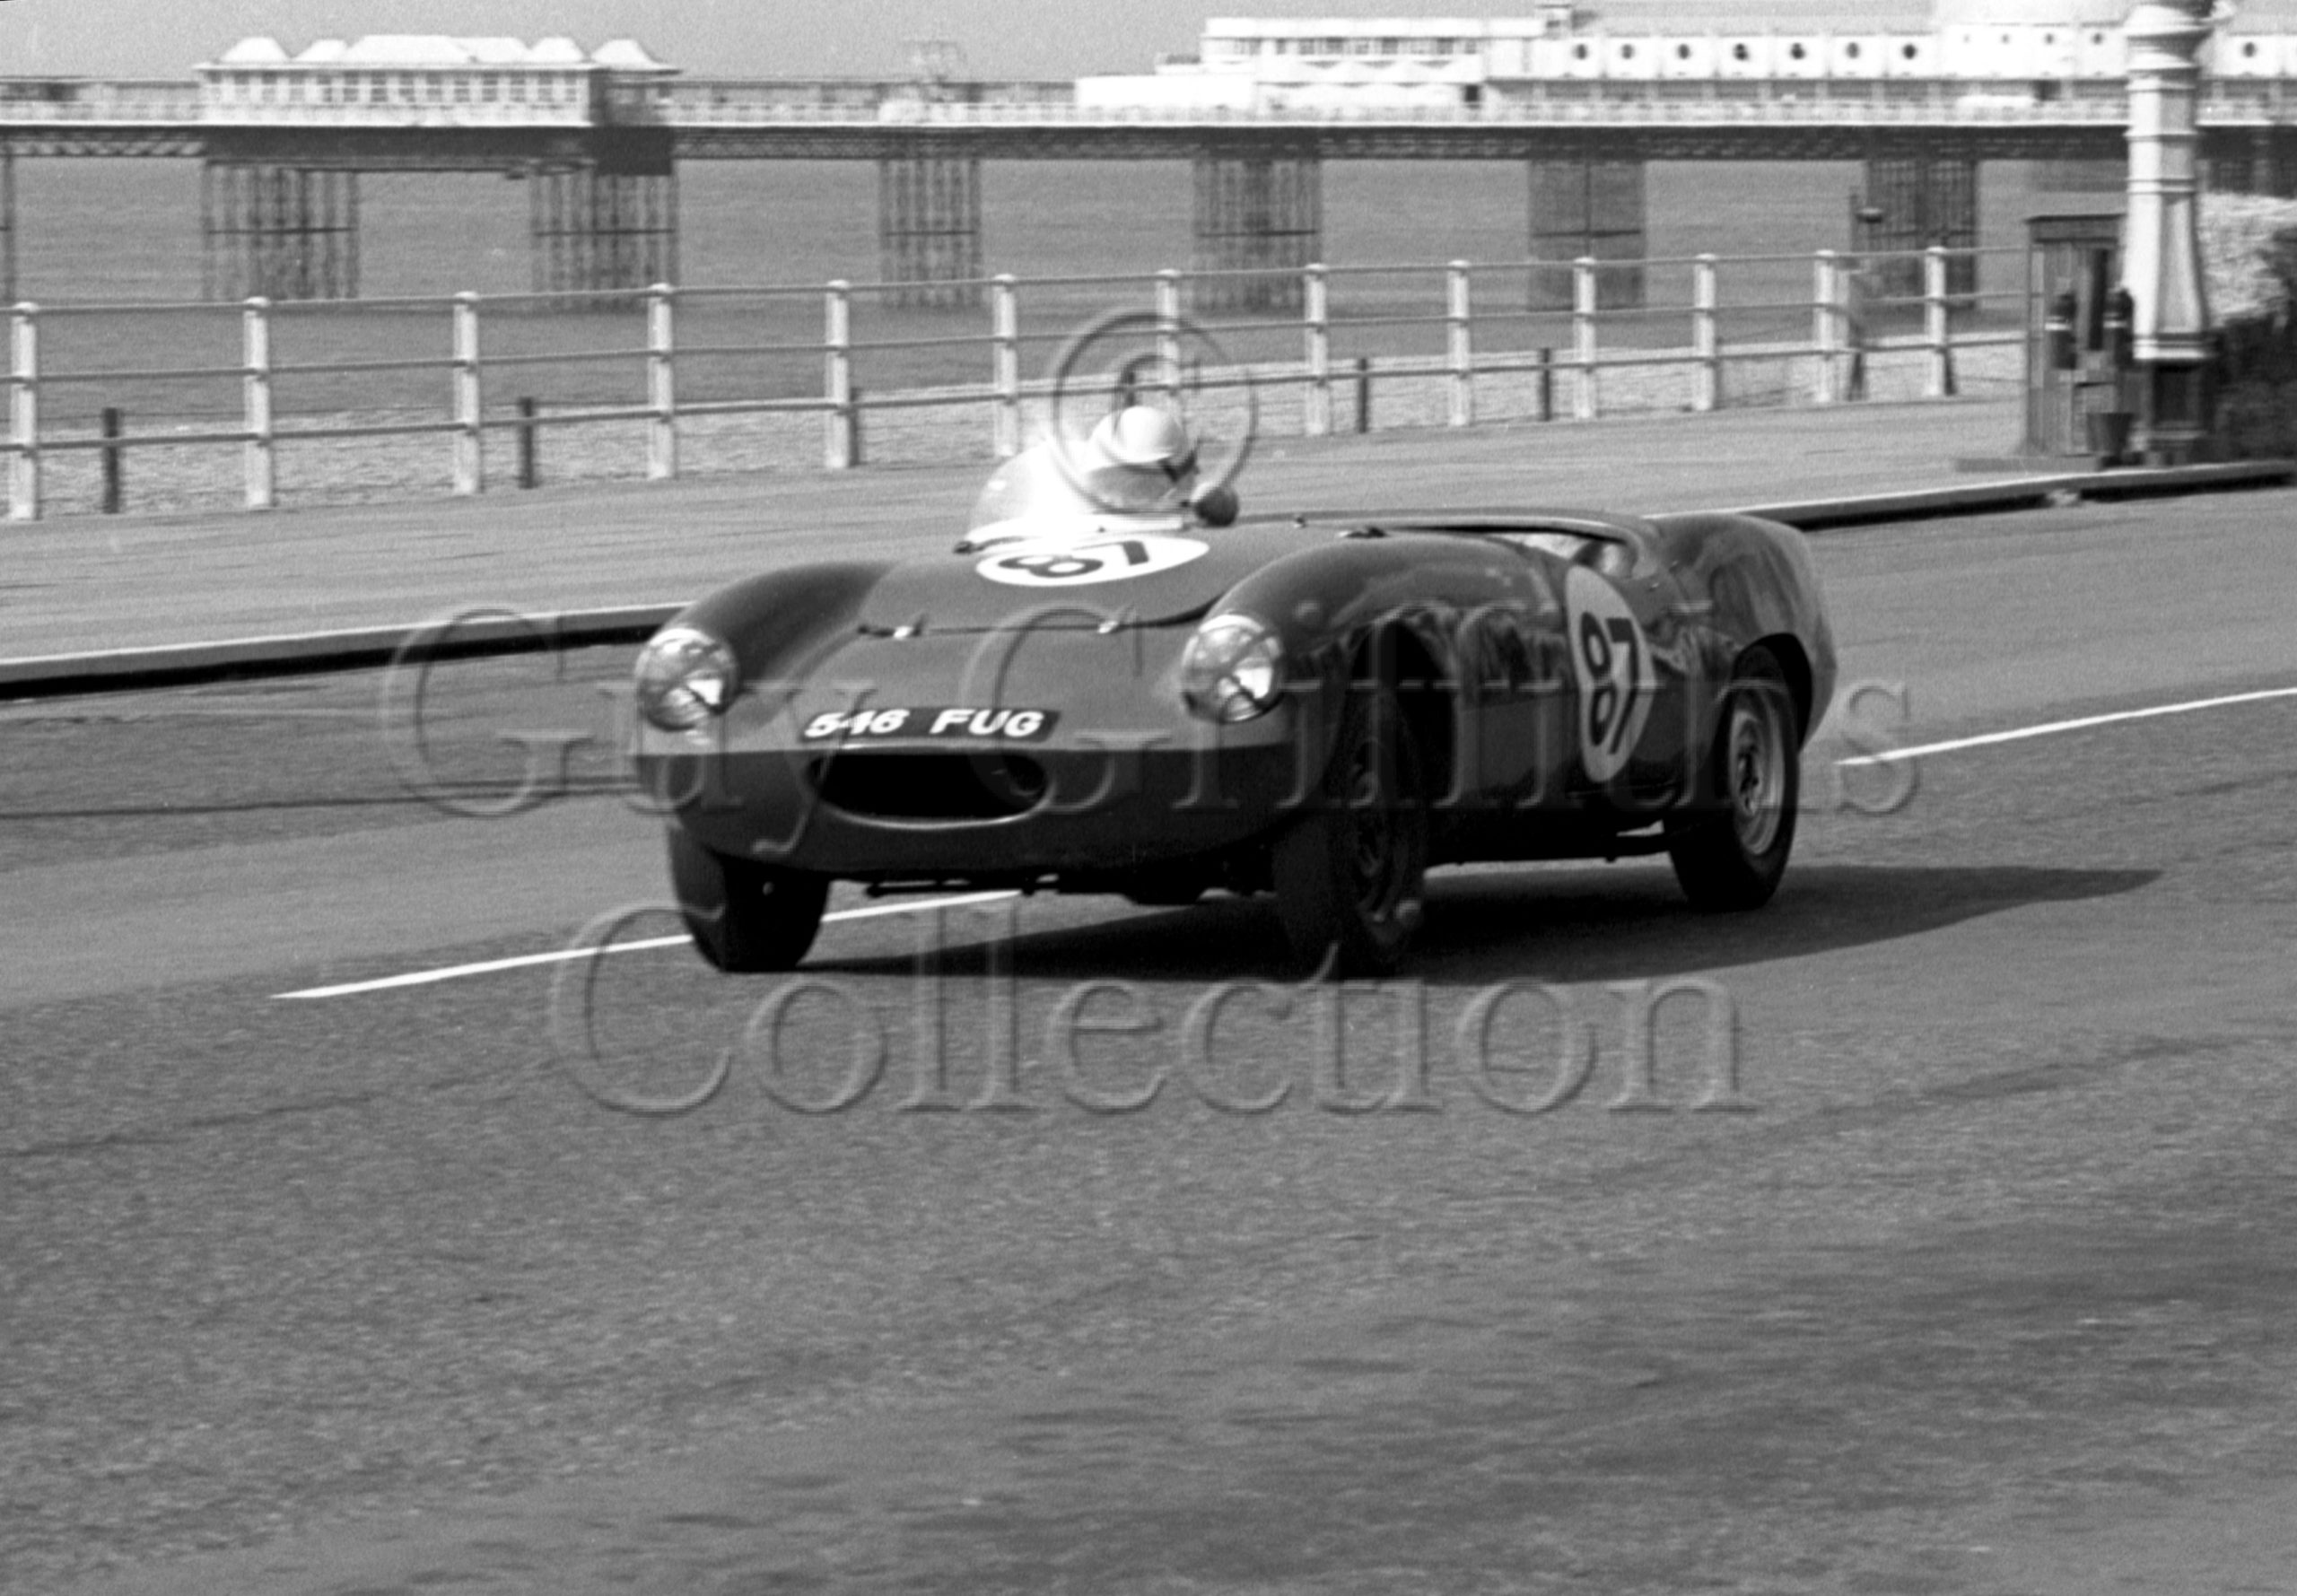 87-542–P-West-Manning–Elva-Courier–Brighton–12-09-1964.jpg - Guy Griffiths Collection